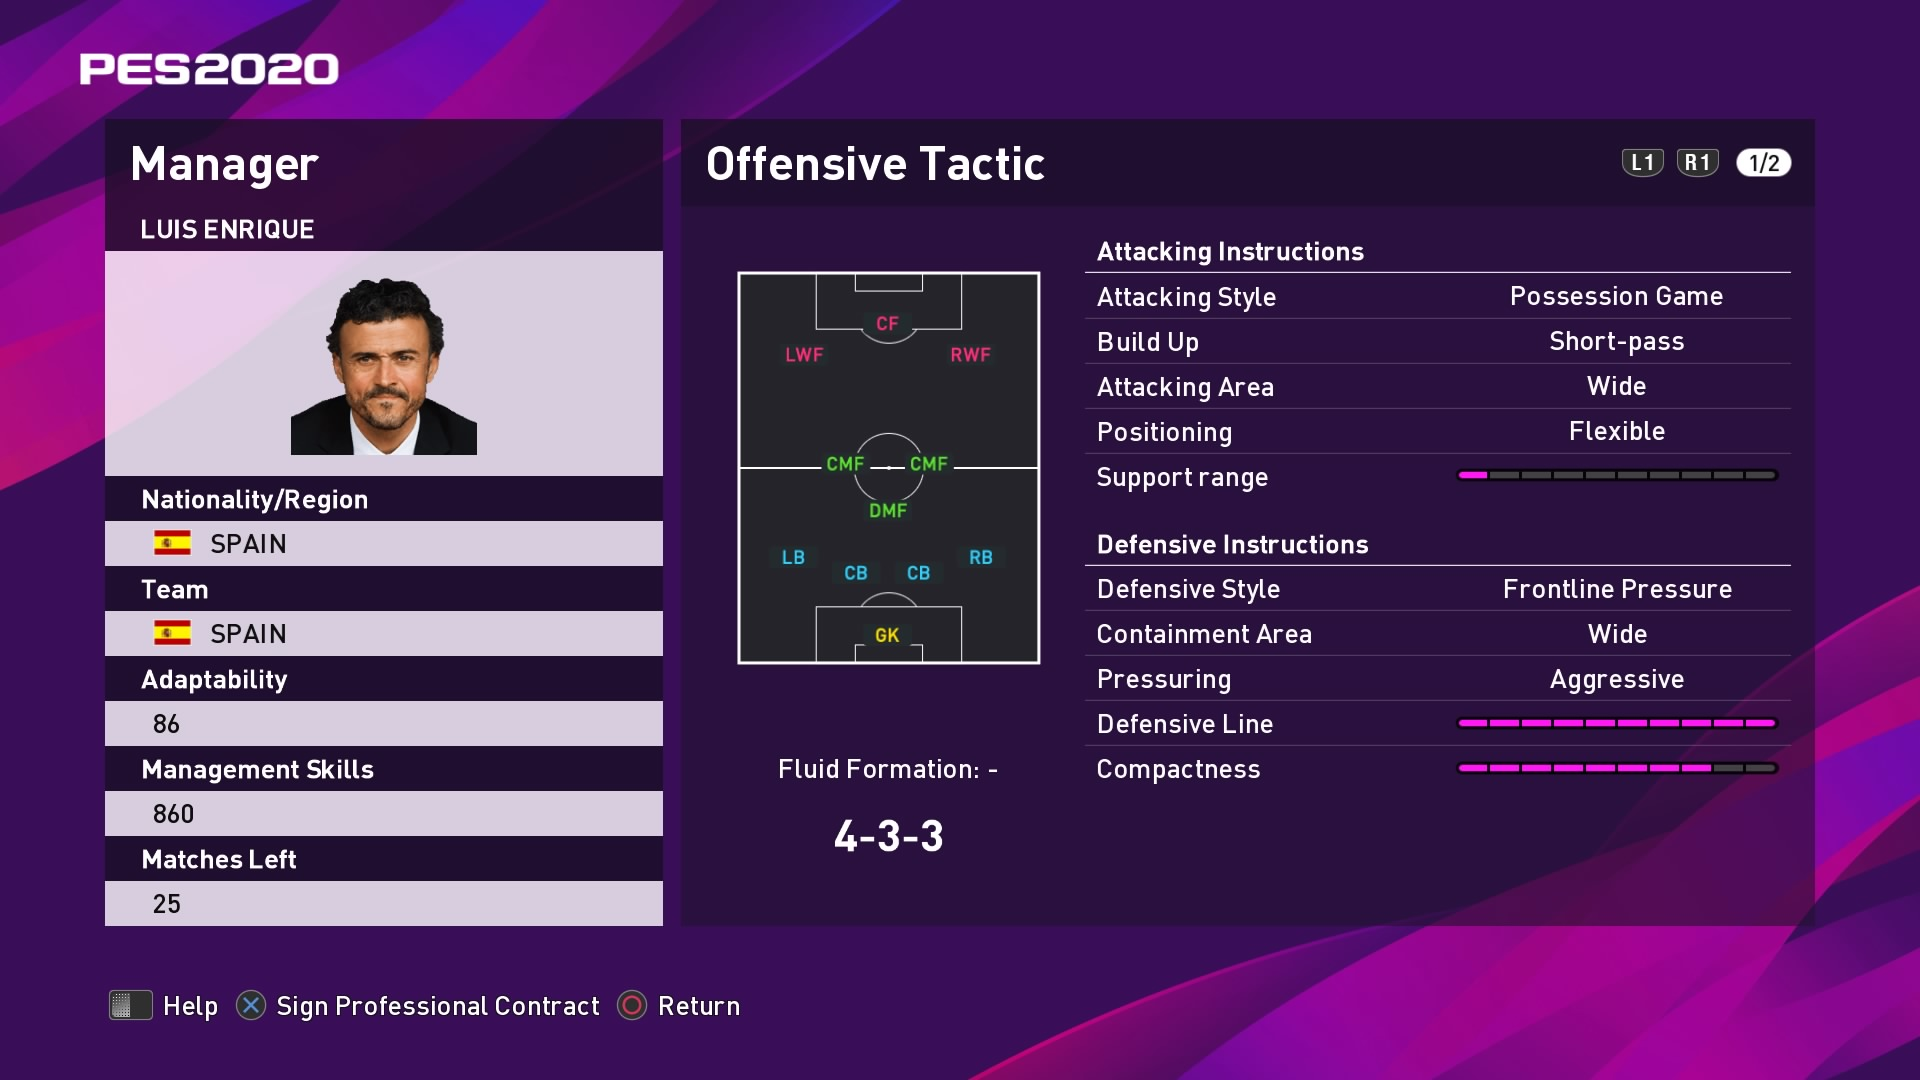 Luis Enrique (2) Offensive Tactic in PES 2020 myClub